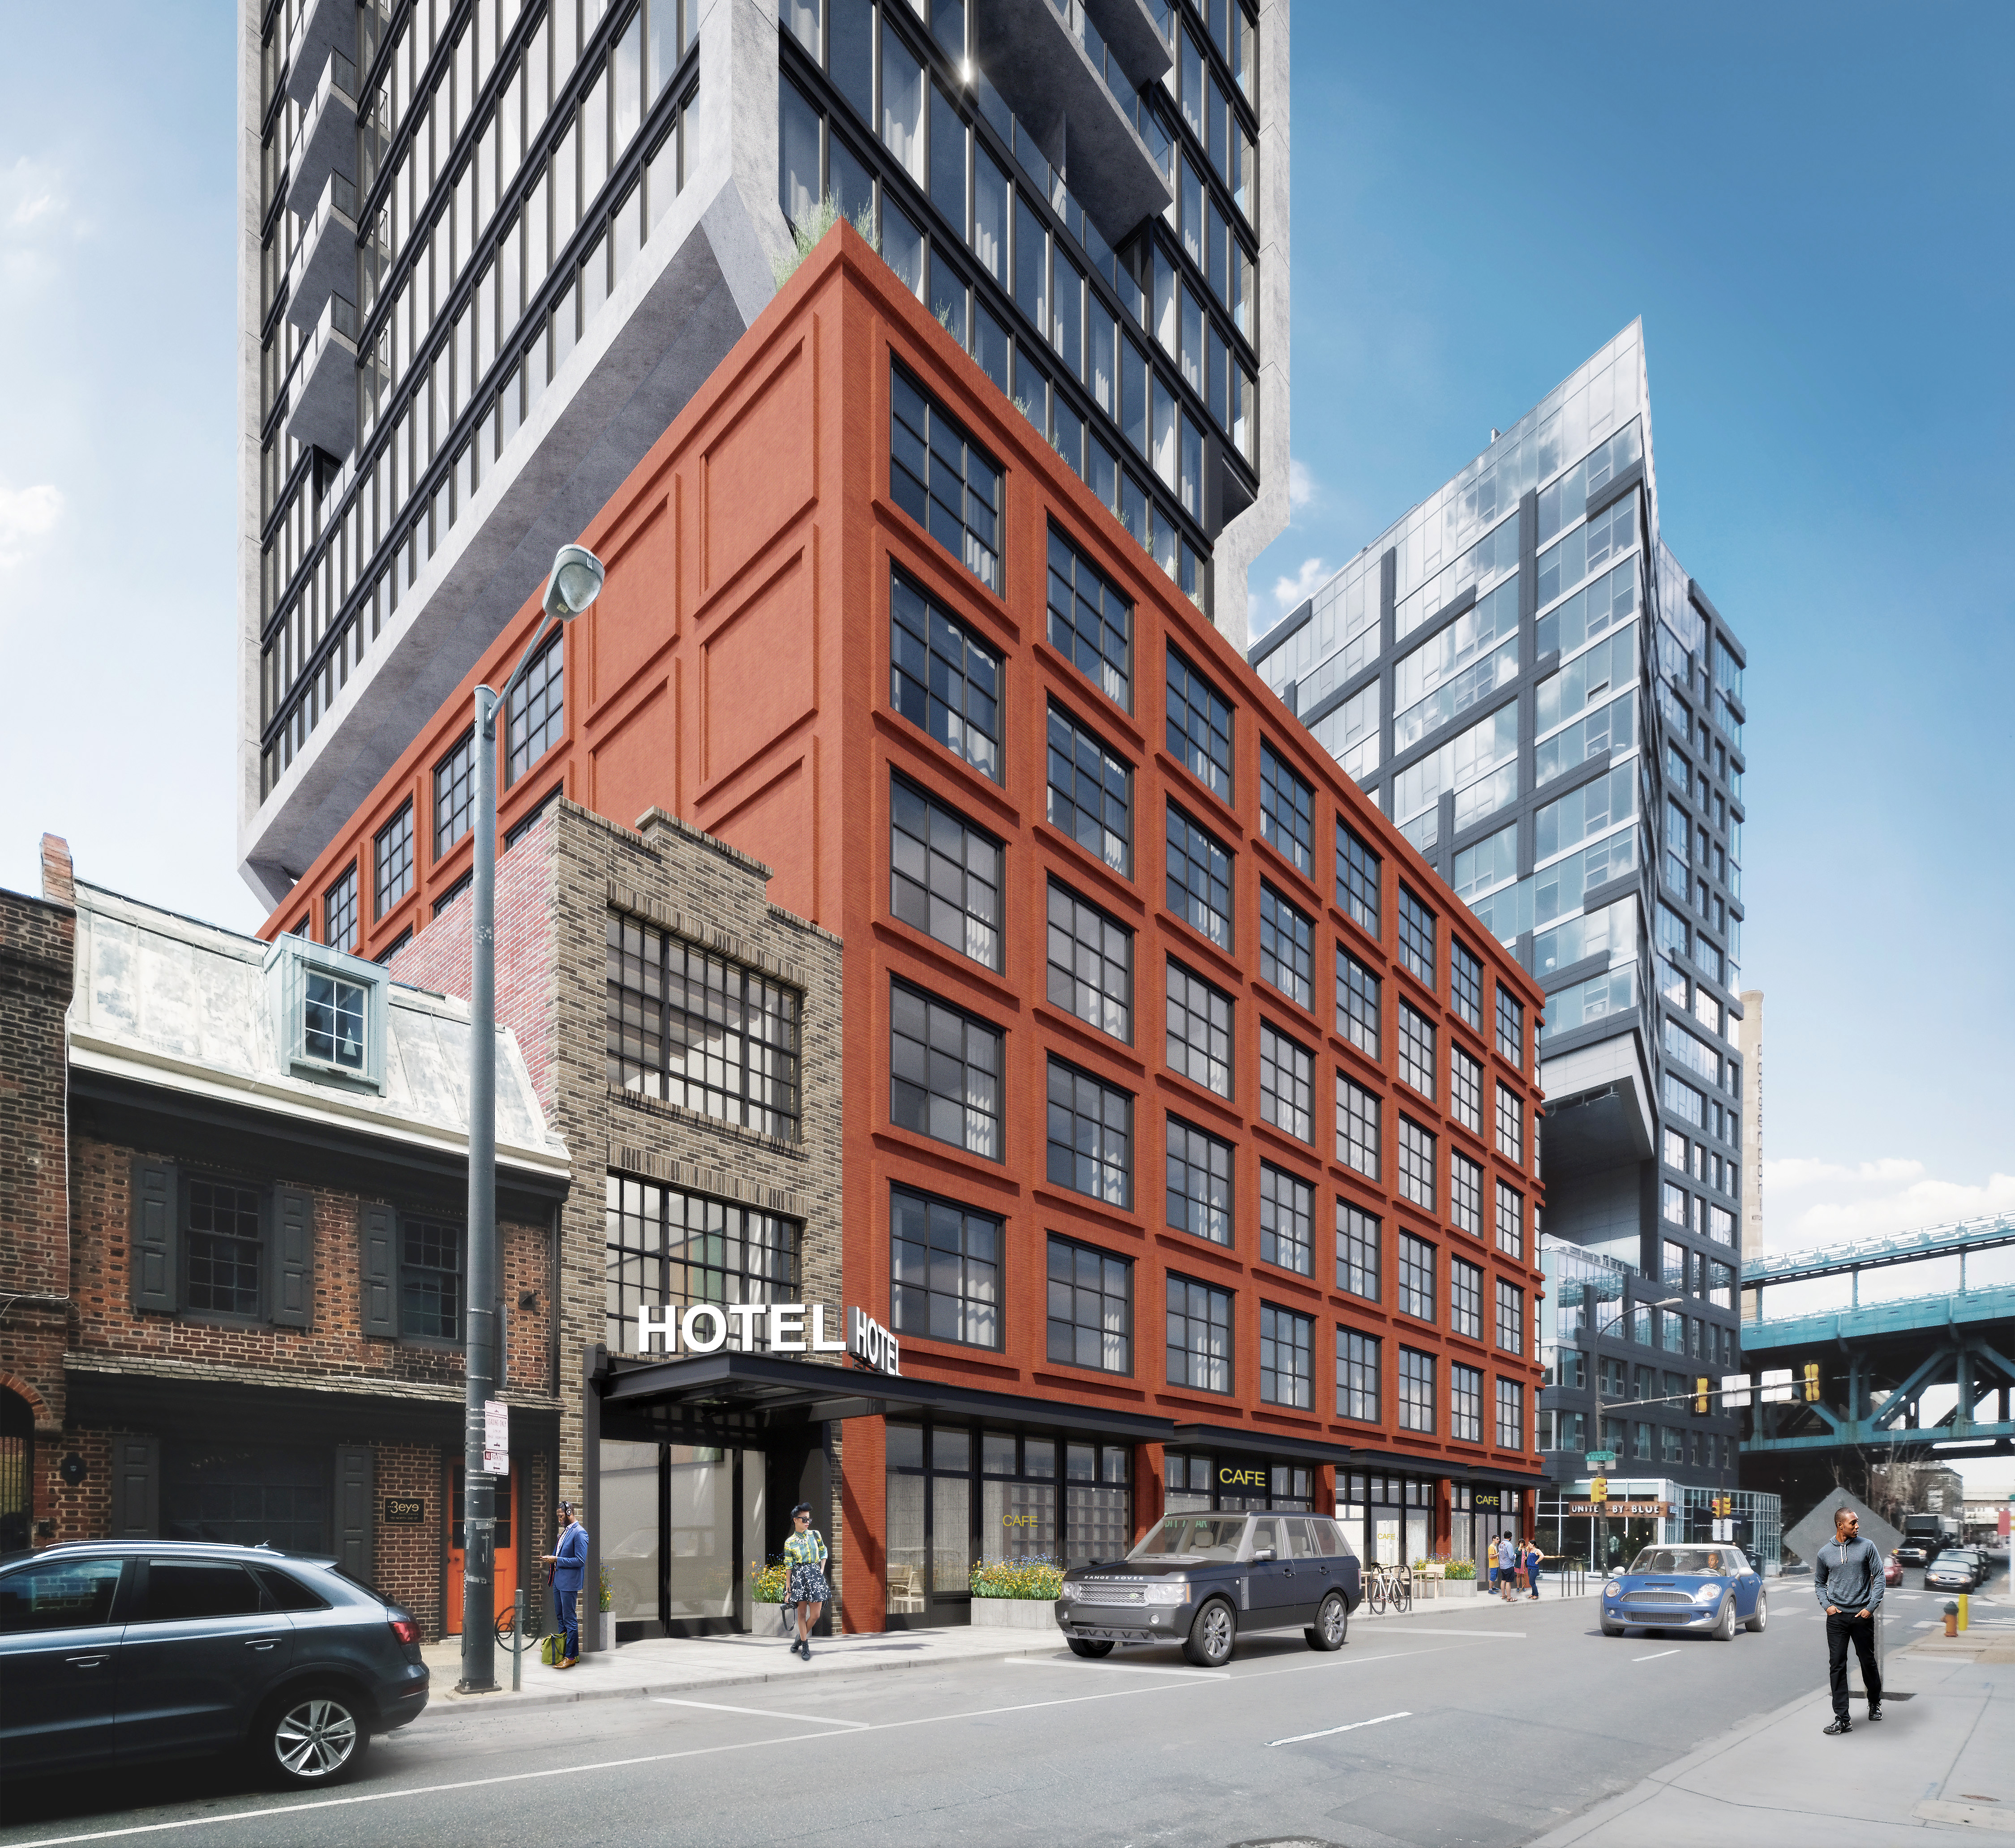 Artist´s rendering of planned hotel and condo tower at Second and Race Streets, as seen looking north on Second Street.